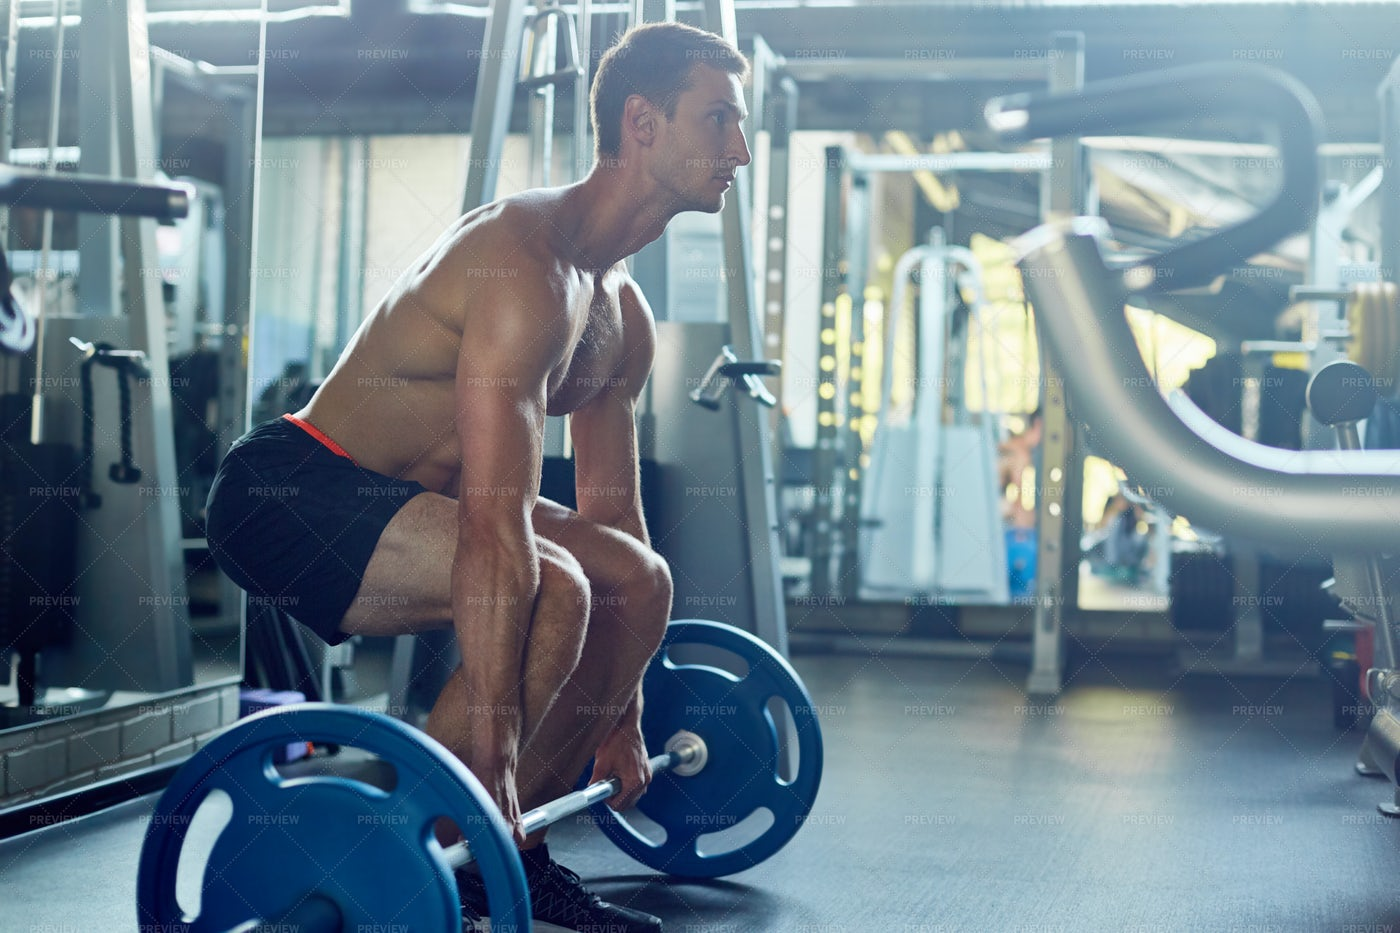 Intensive Weightlifting Training: Stock Photos